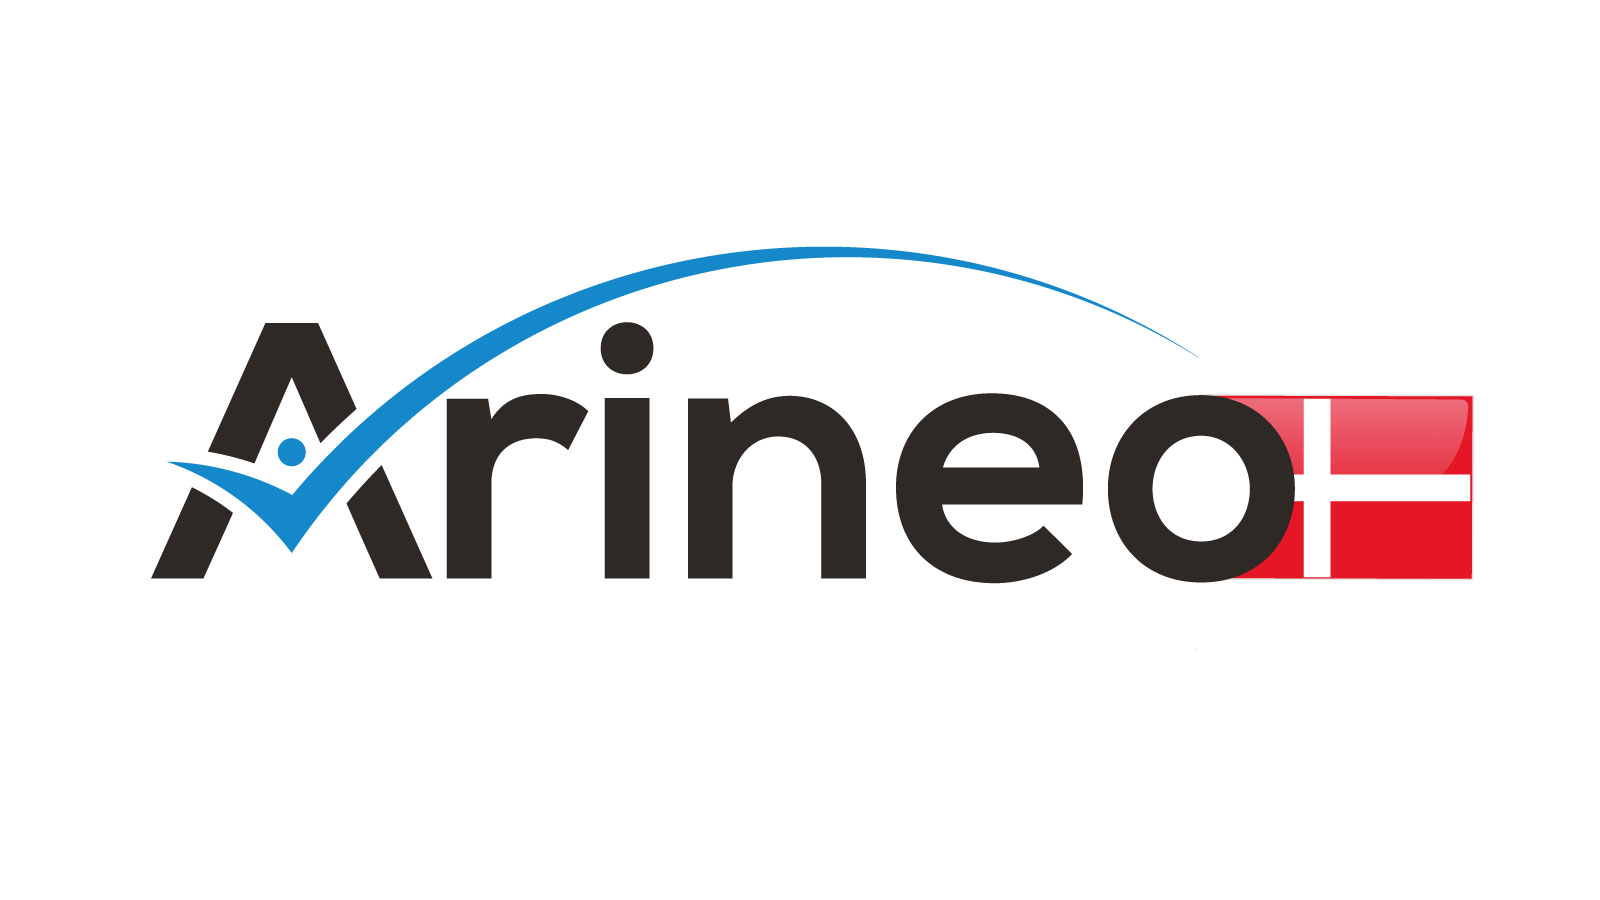 Arineo founds new location in Denmark